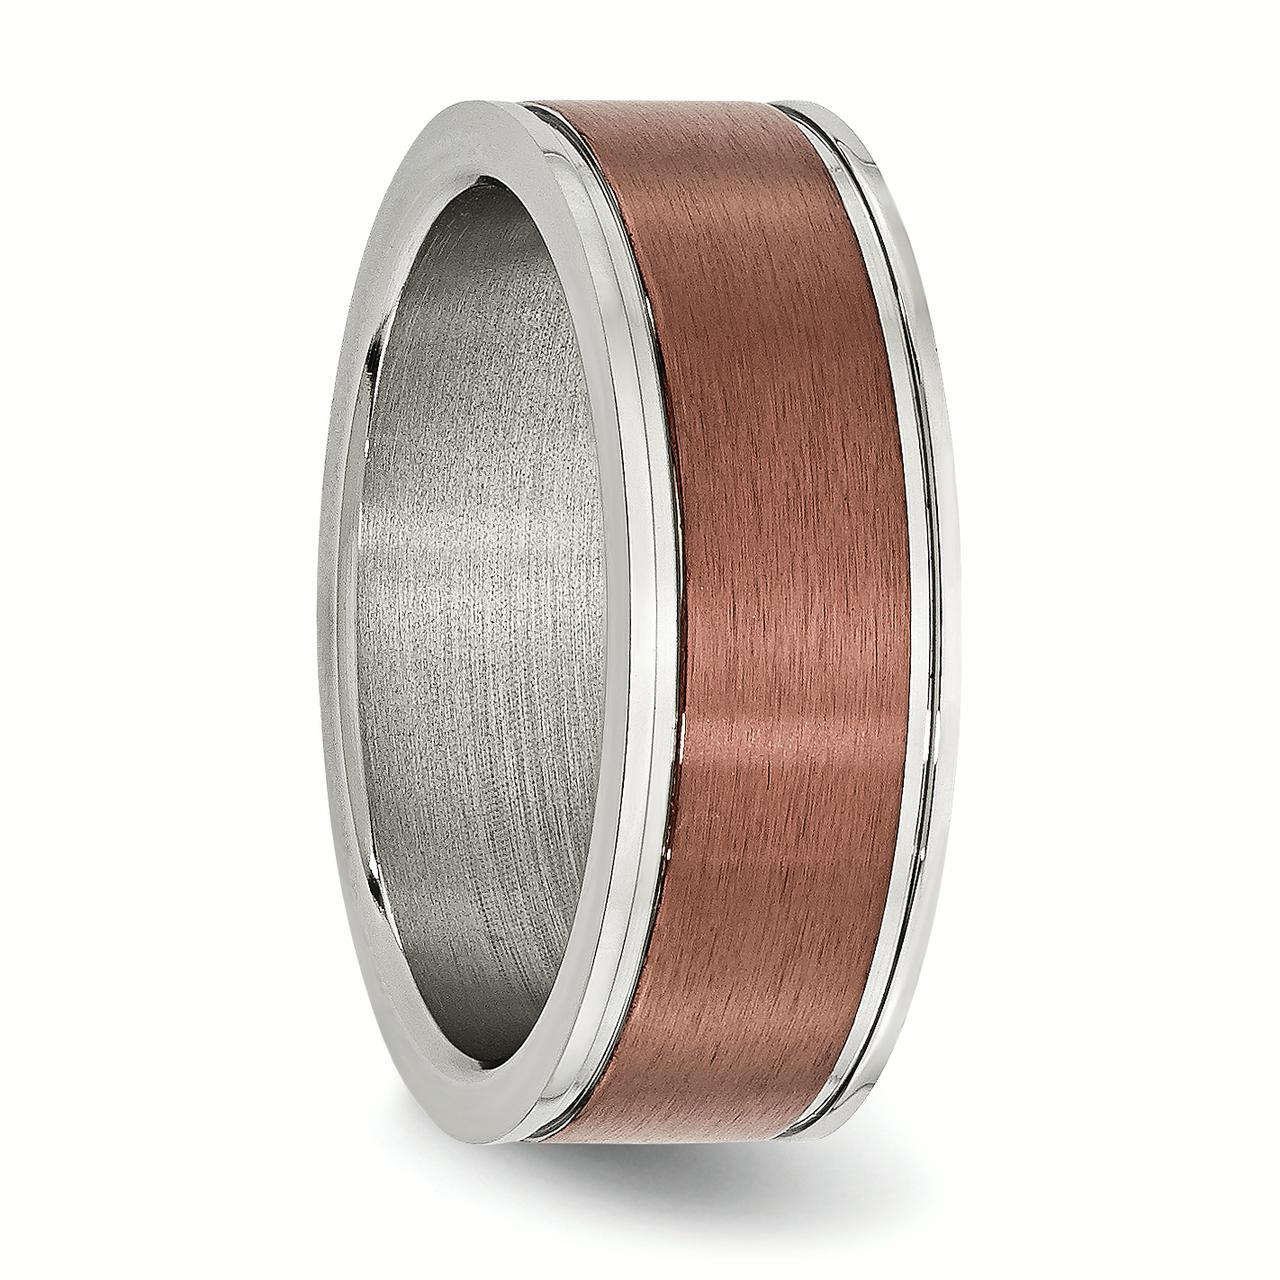 Stainless Steel 8mm Brown Plated Brushed Wedding Ring Band Size 13.00 Fancy Fashion Jewelry Gifts For Women For Her - image 5 de 6